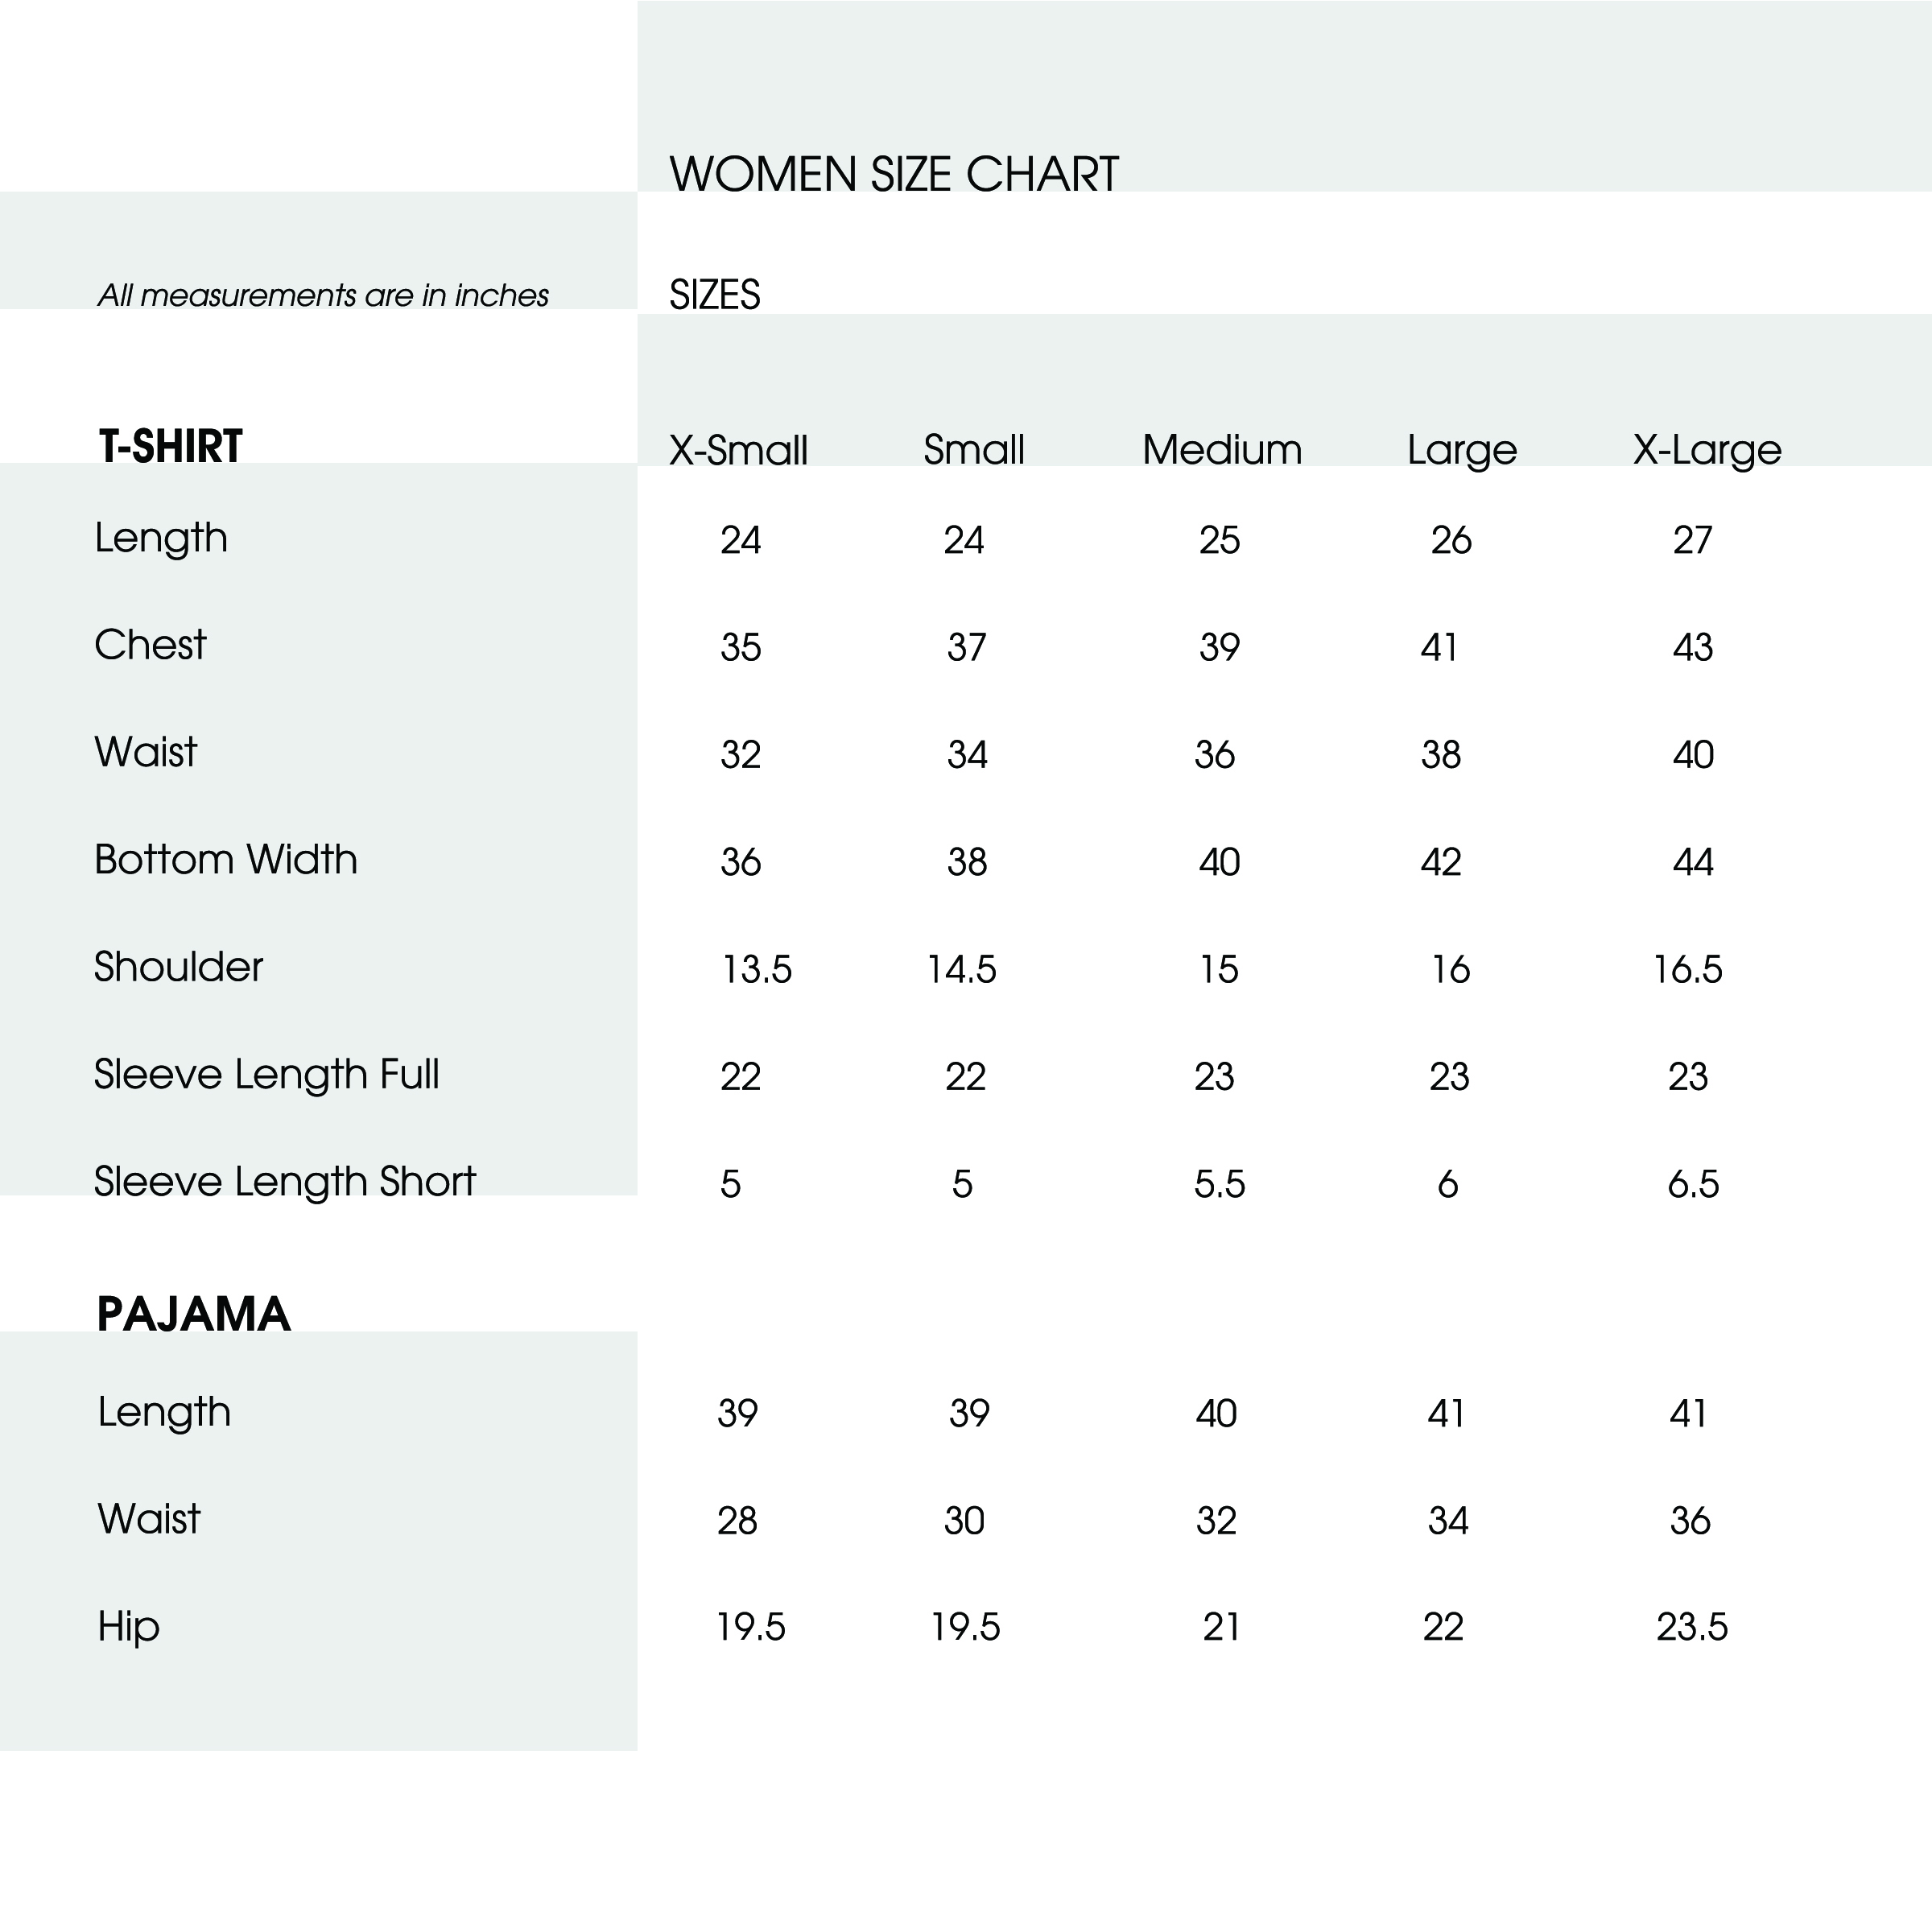 women-specs-sheet-website-jersey-fleece.jpg